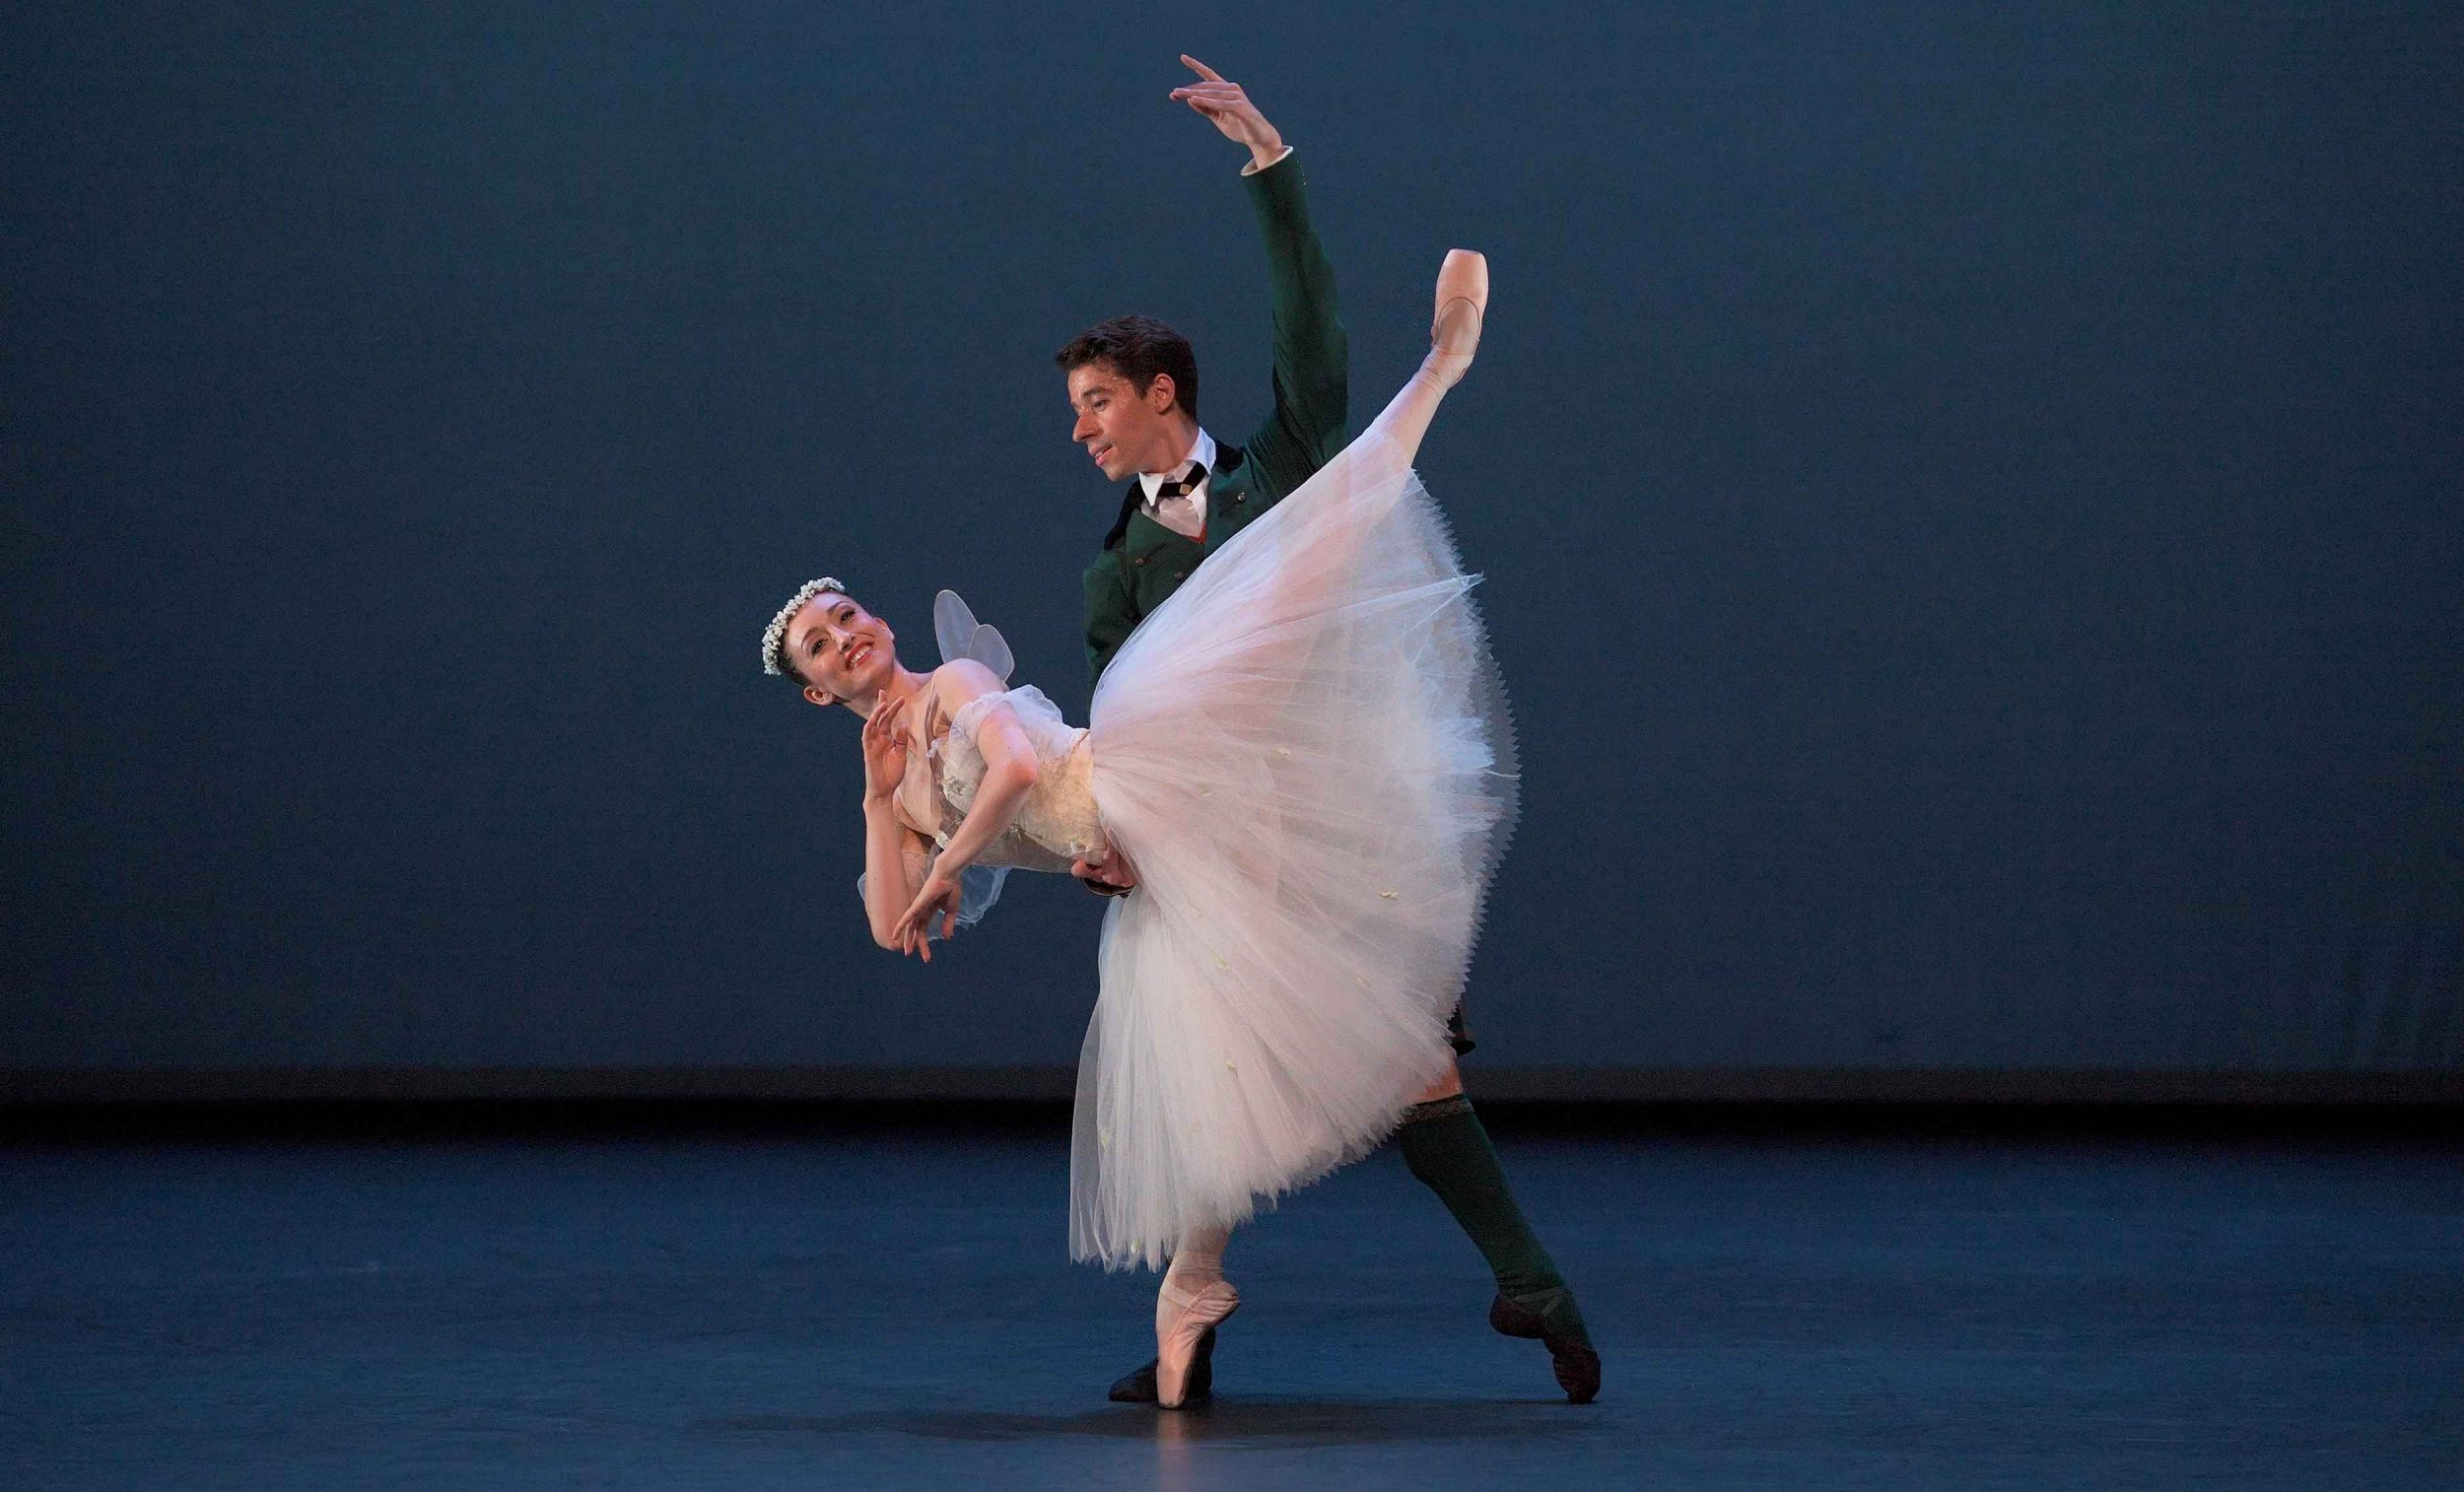 Madison-Keesler-and-Guilherme-Menezes-performing-La-Sylphide-pas-de-deux-©-Laurent-Liotardo-(1)